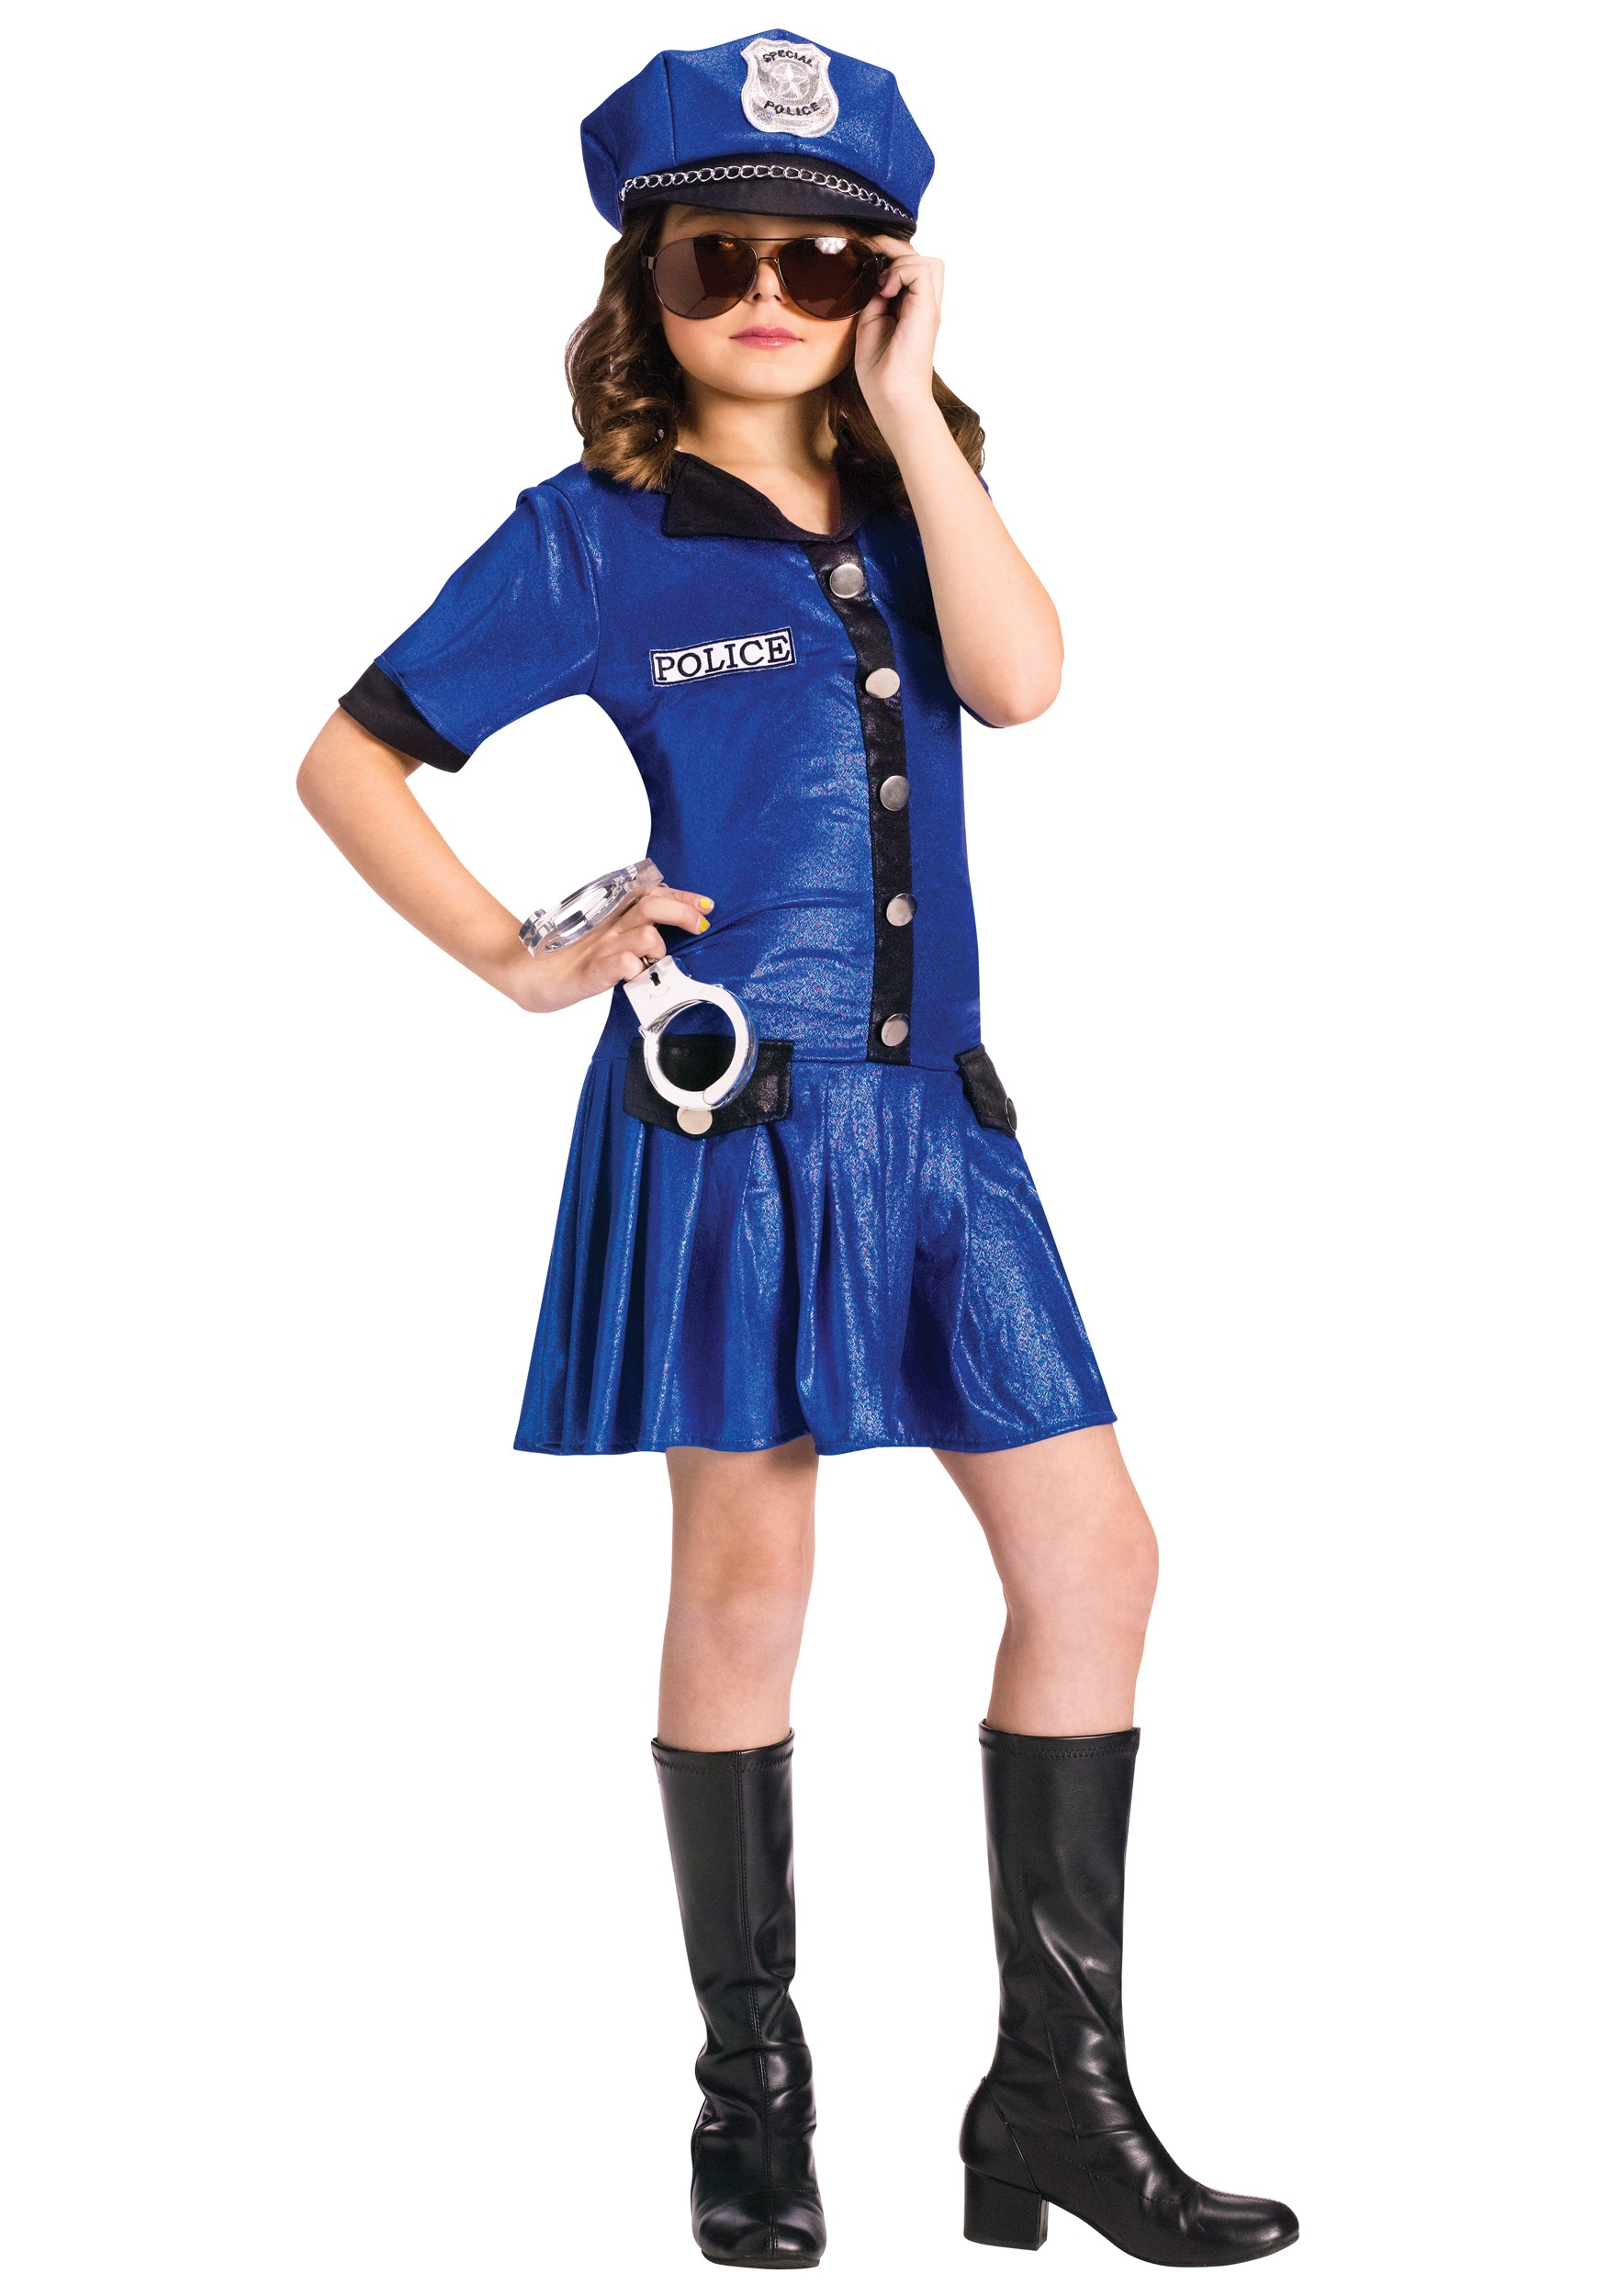 cute halloween costume ideas for women on halloween costume ideas police costumes kids police costumes girls - Halloween Costume Idea Women